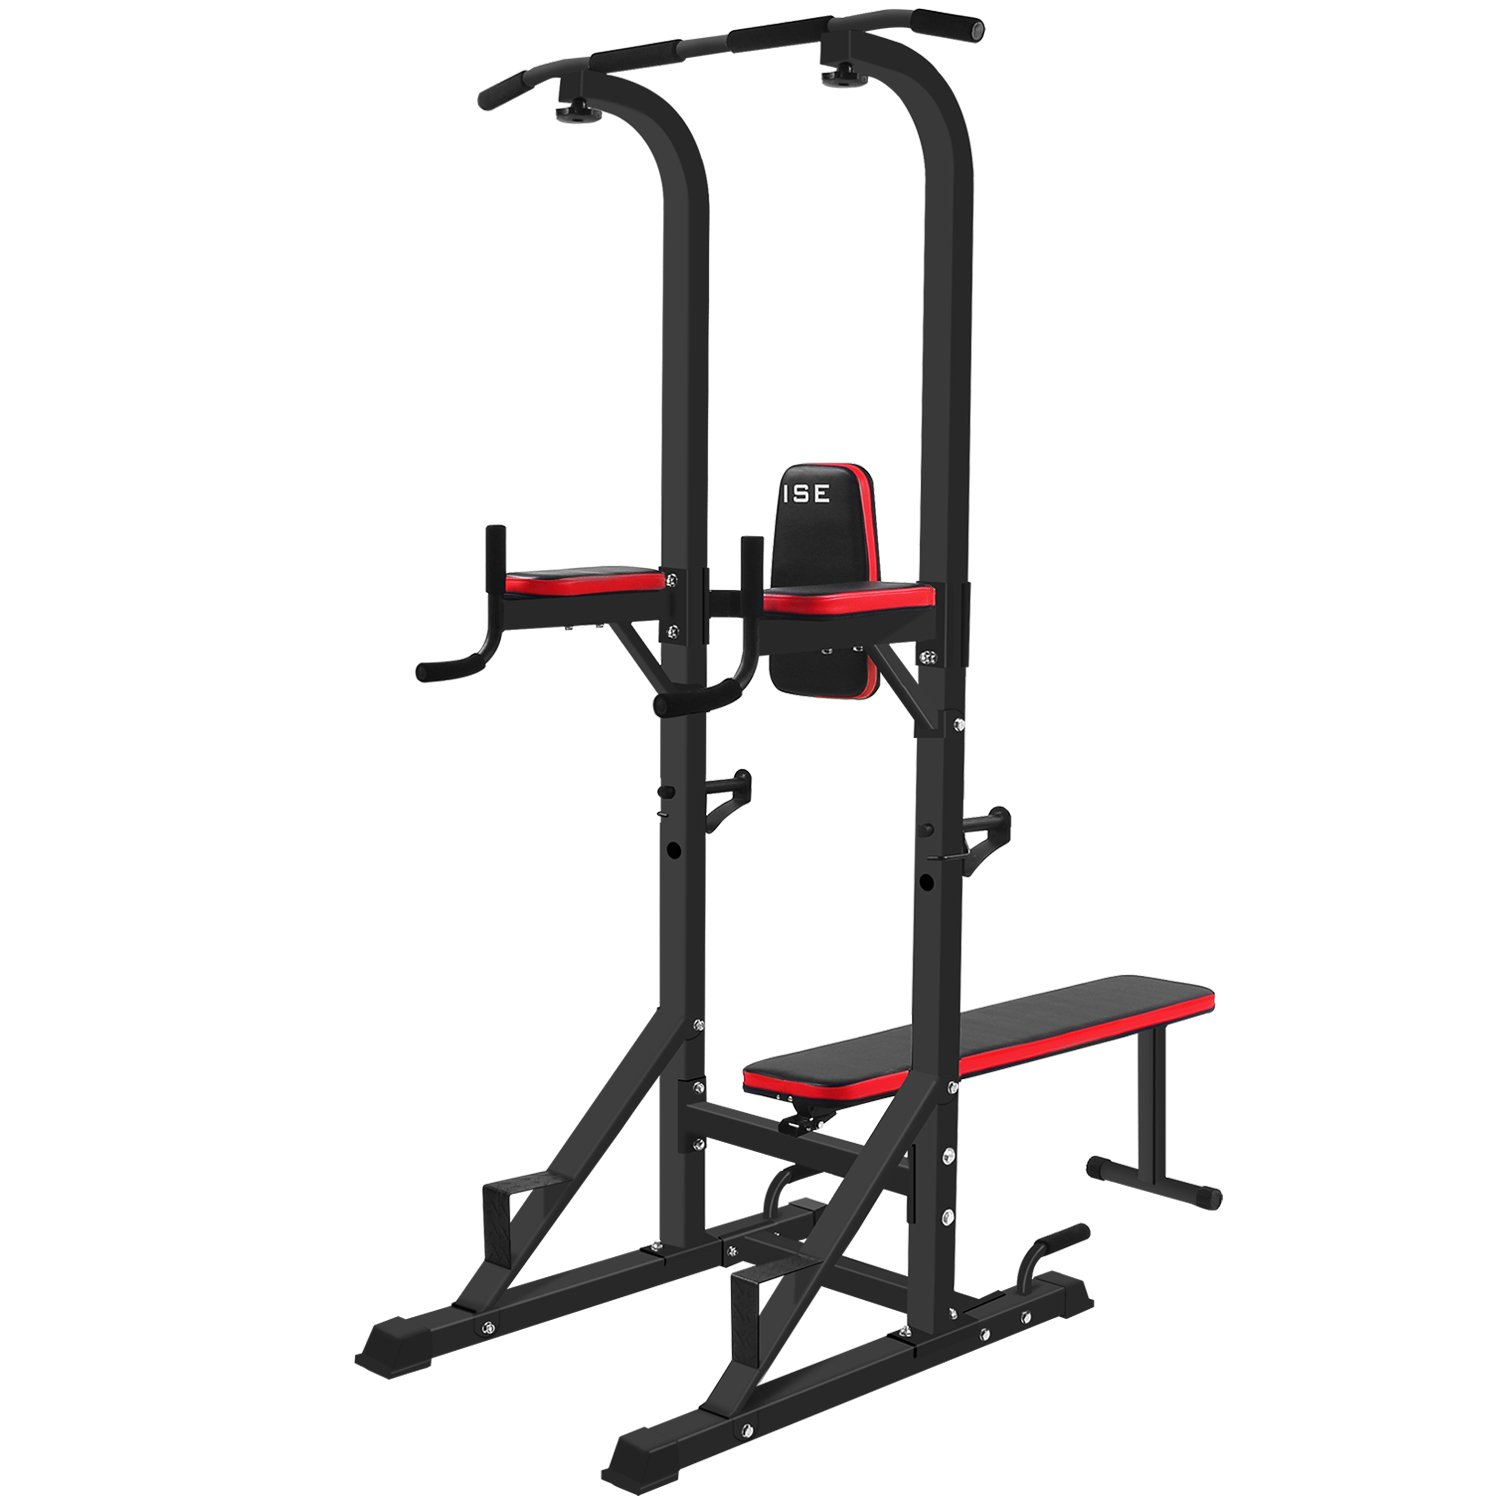 ISE Chaise Romaine Station Traction dips Multifonctions Barre de Traction dips Banc de Musculation SY-4006 product image